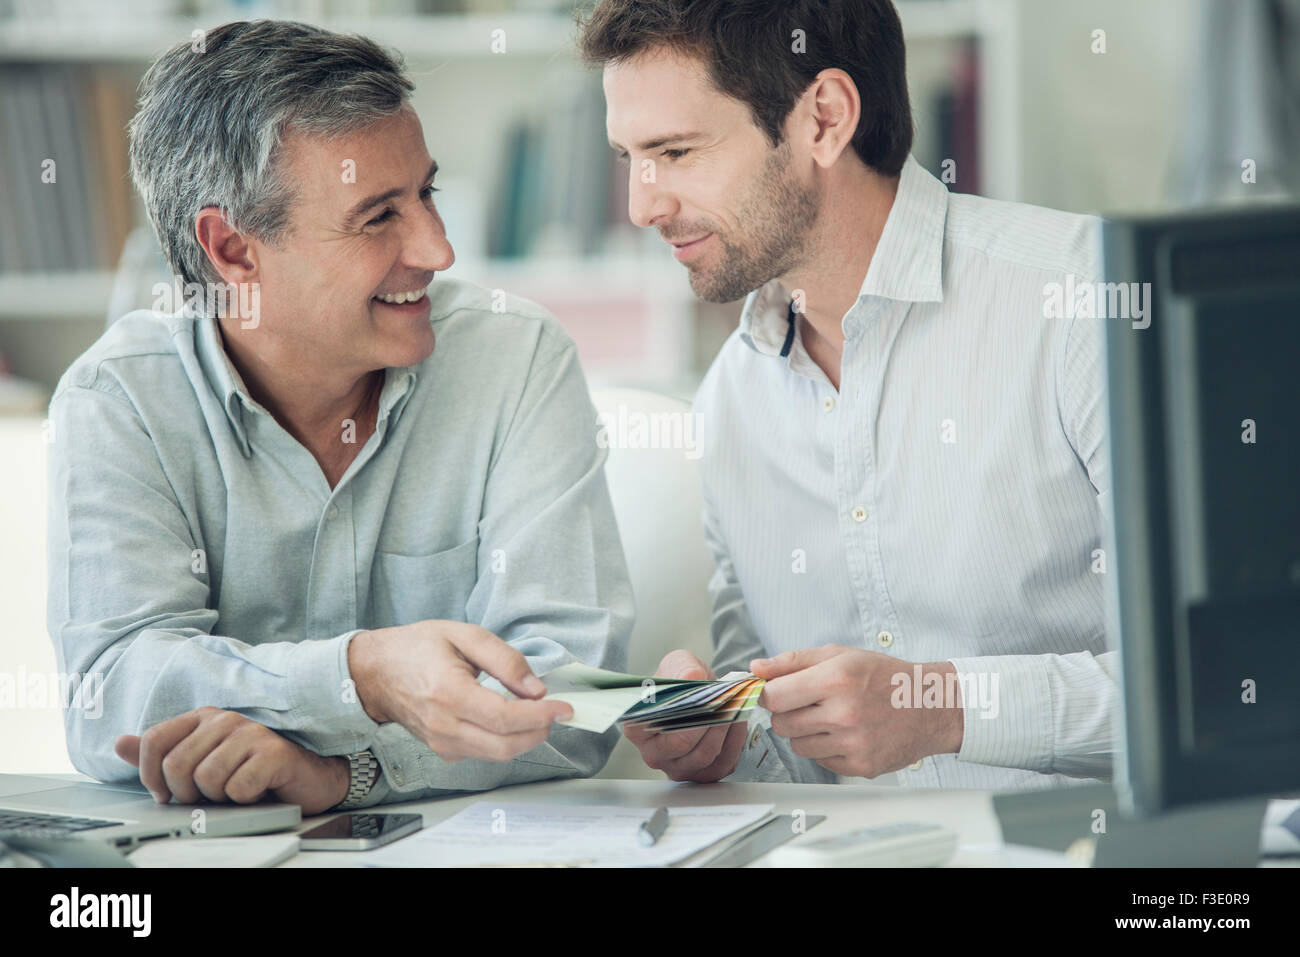 Colleagues looking at color swatches together - Stock Image